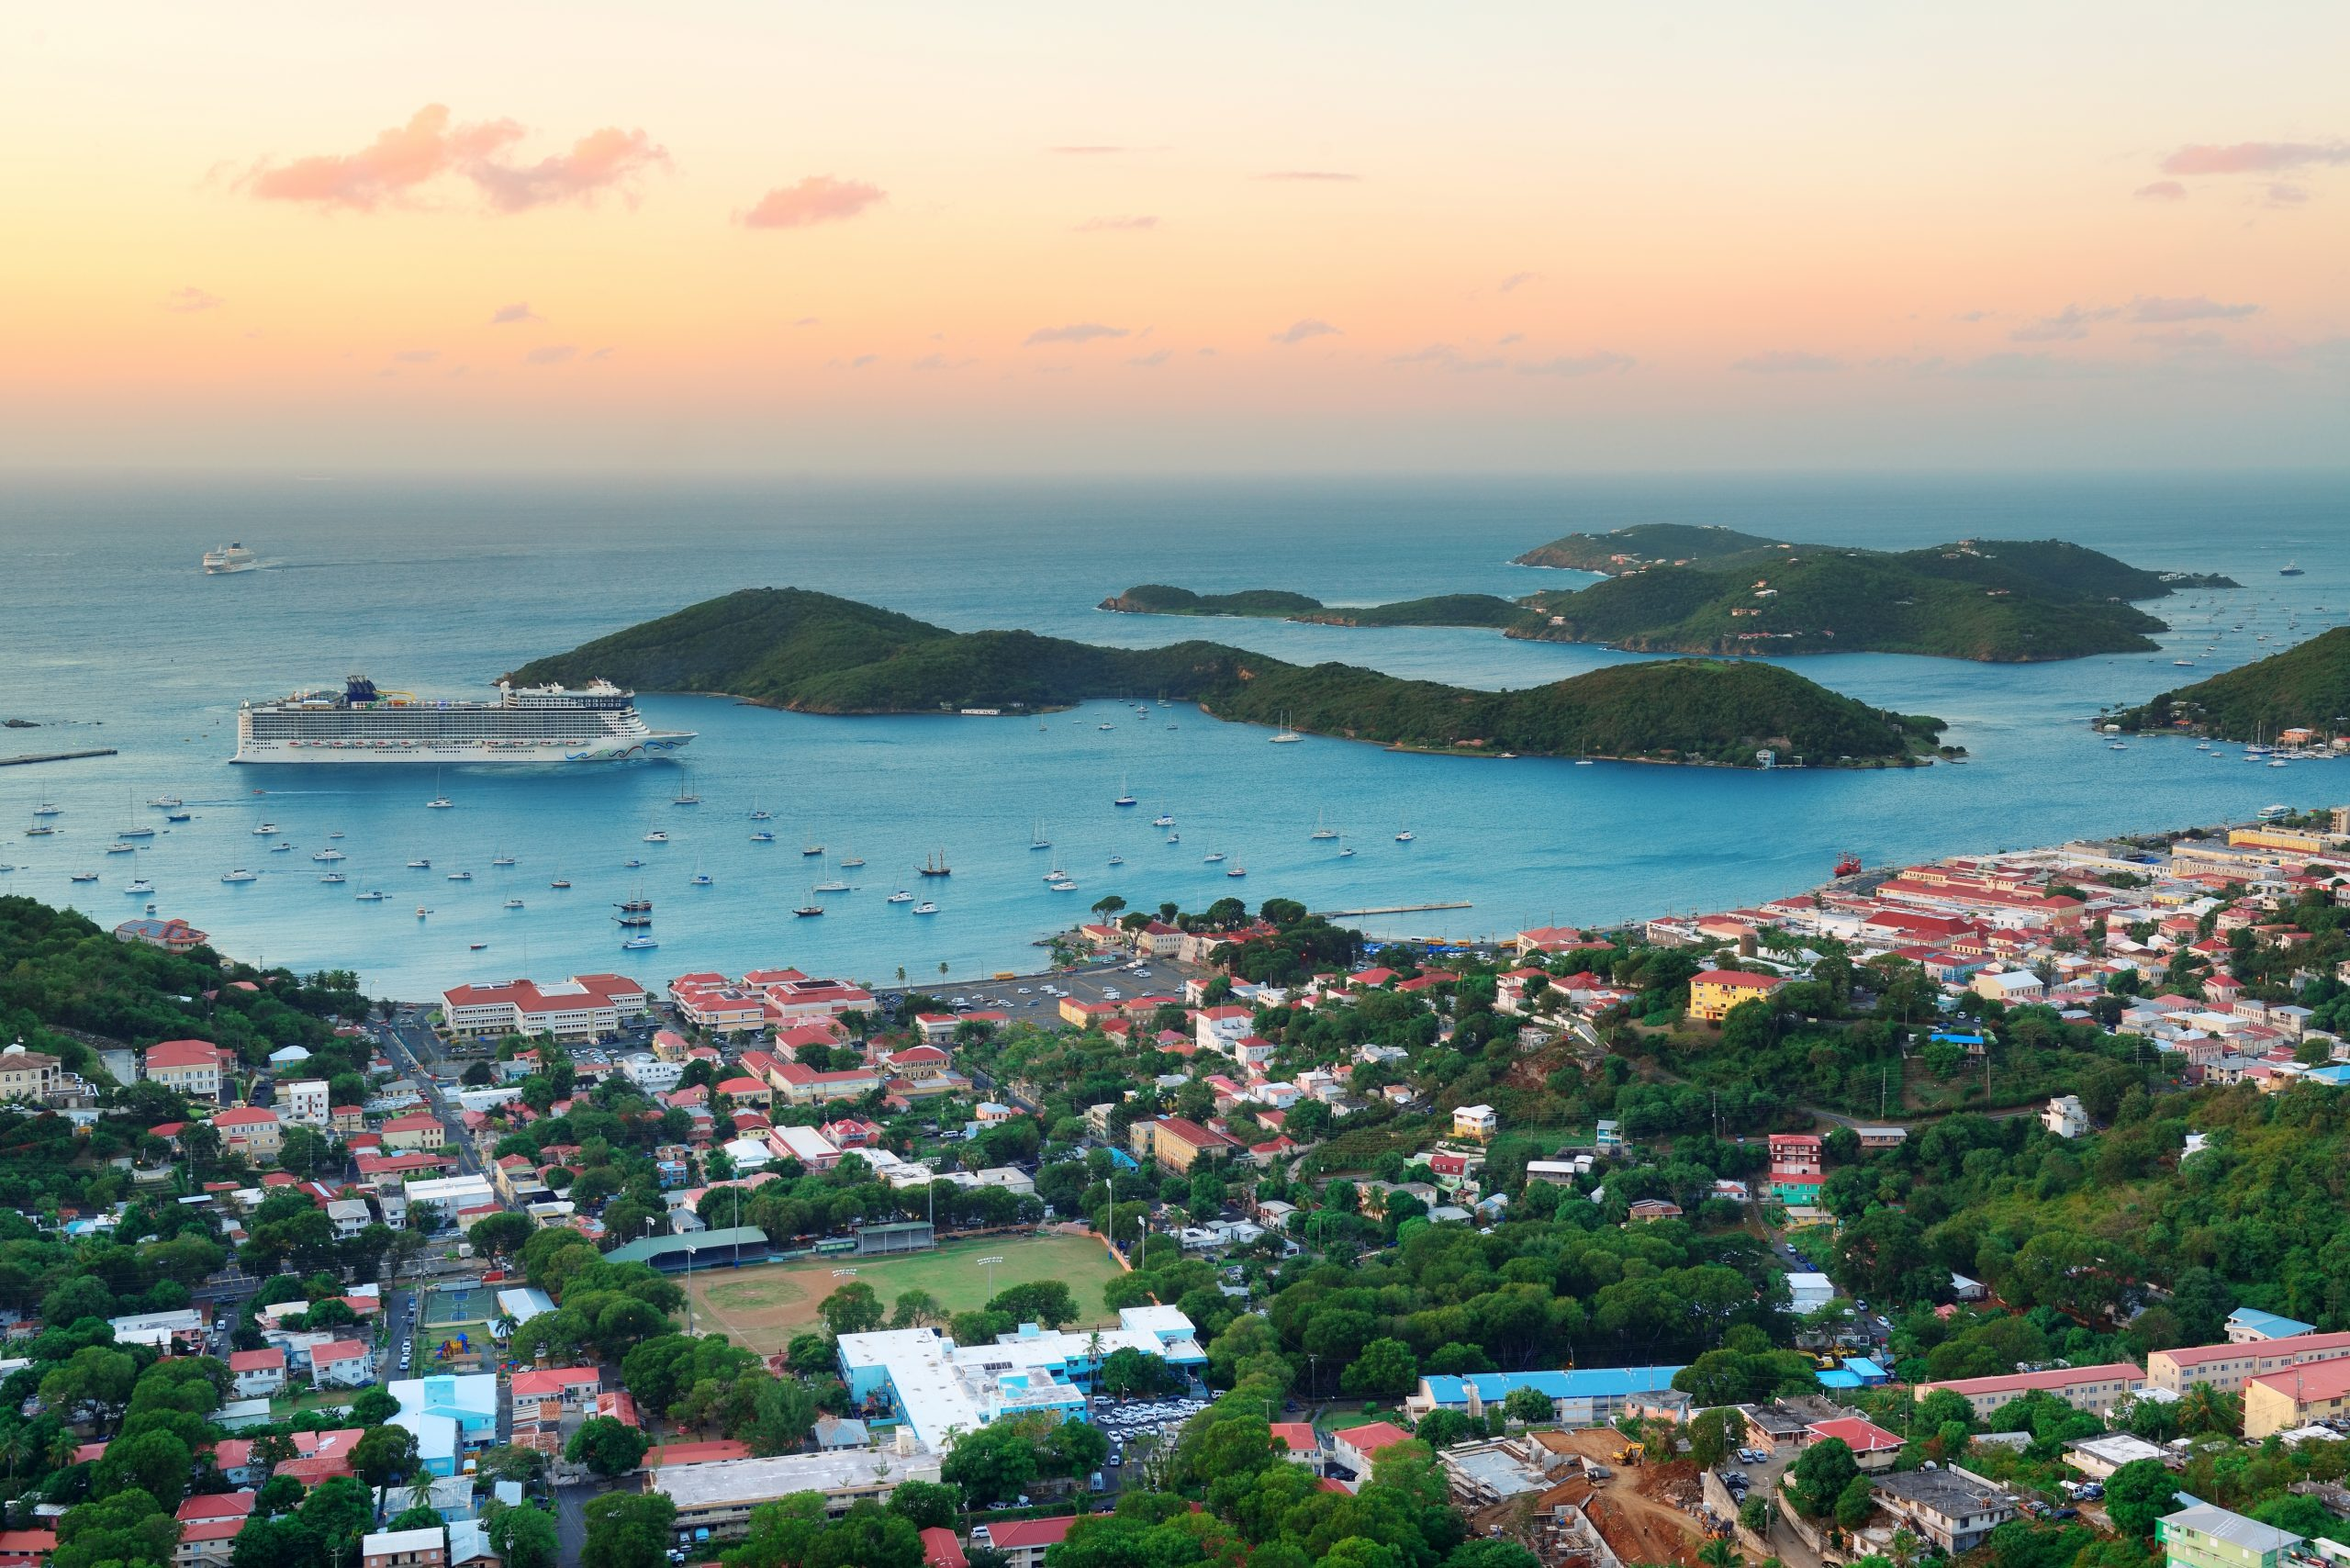 Getting Away For a While: Tips For Planning a Great St. Thomas Vacation